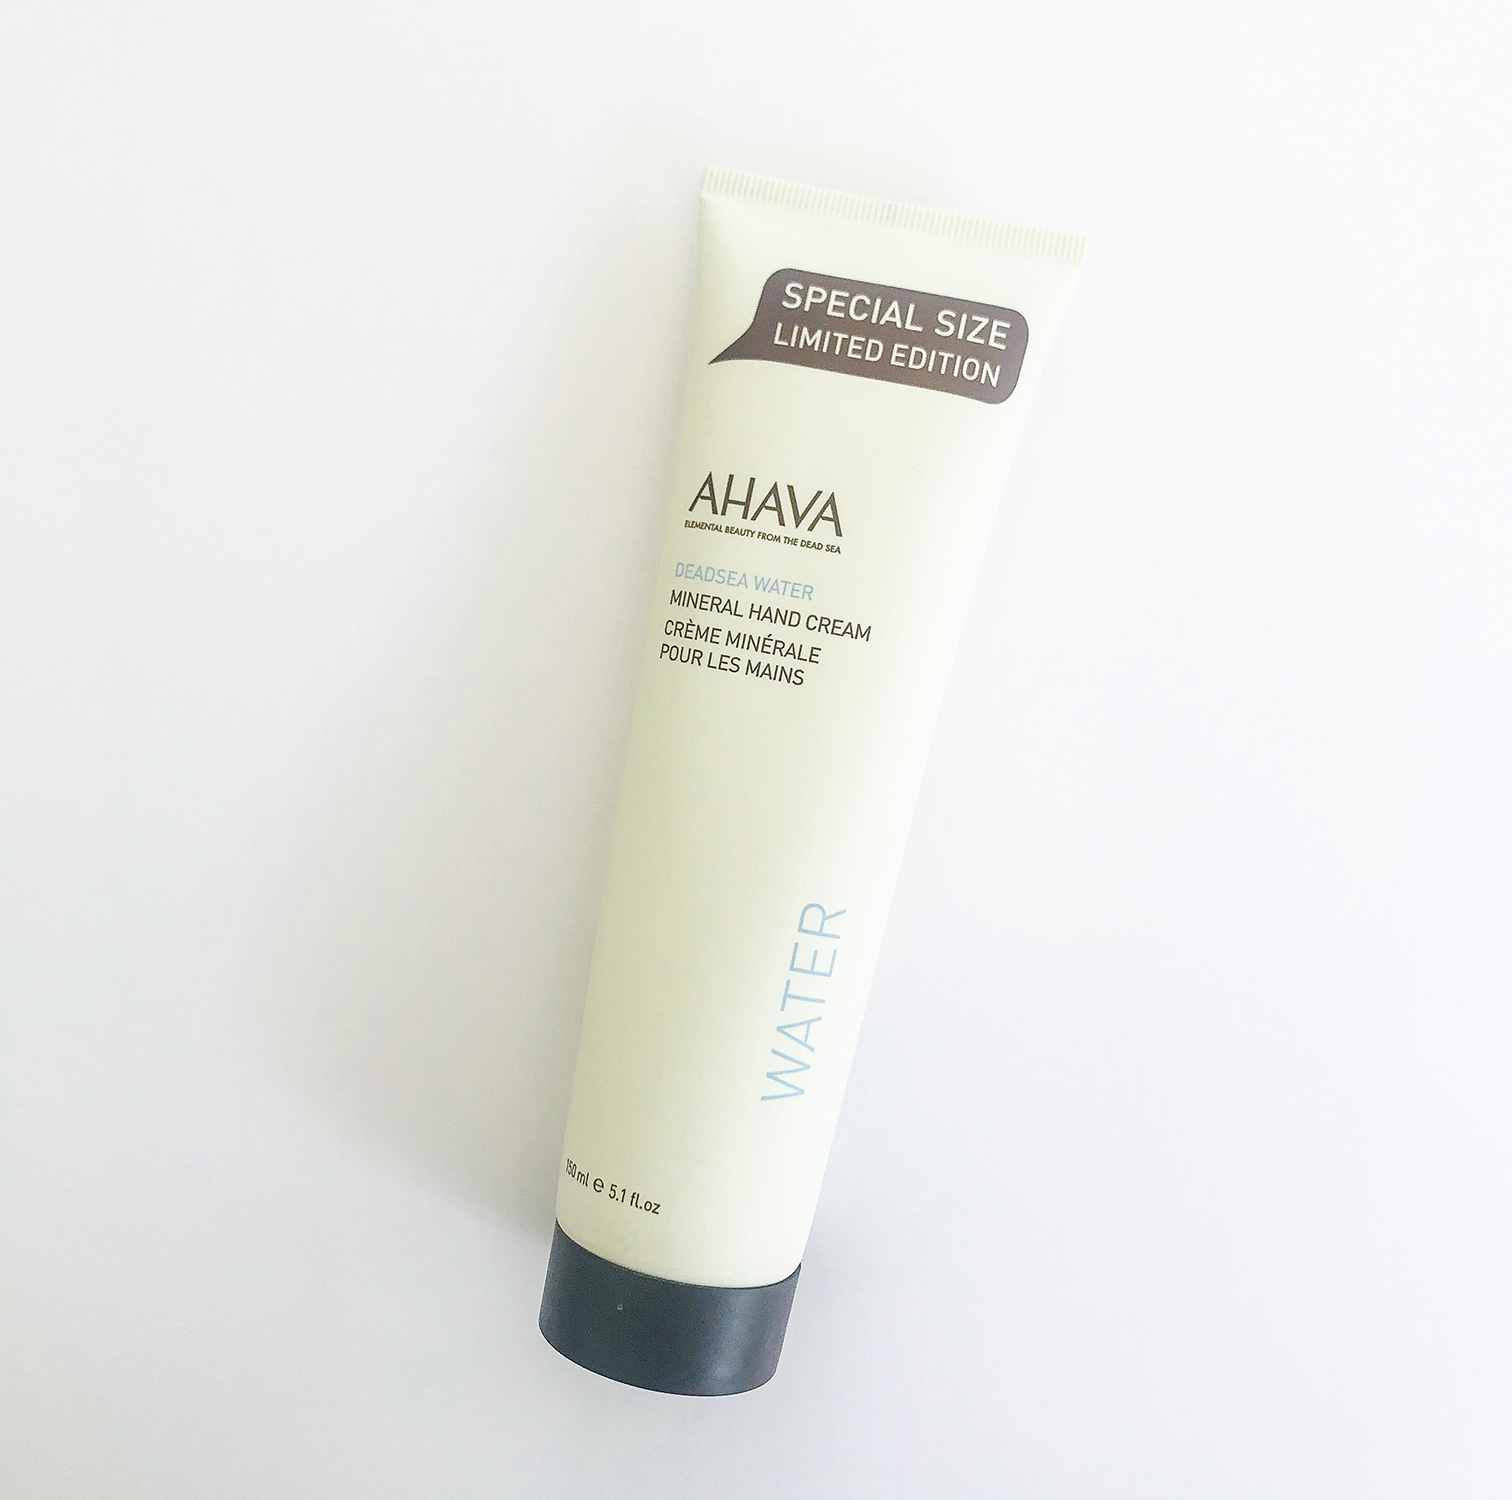 AHAVA Dead Sea Water - Mineral hand cream. Elemental Beauty from the Dead Sea.Special Size Limited Edition - 150mlR360 (retails for $45)